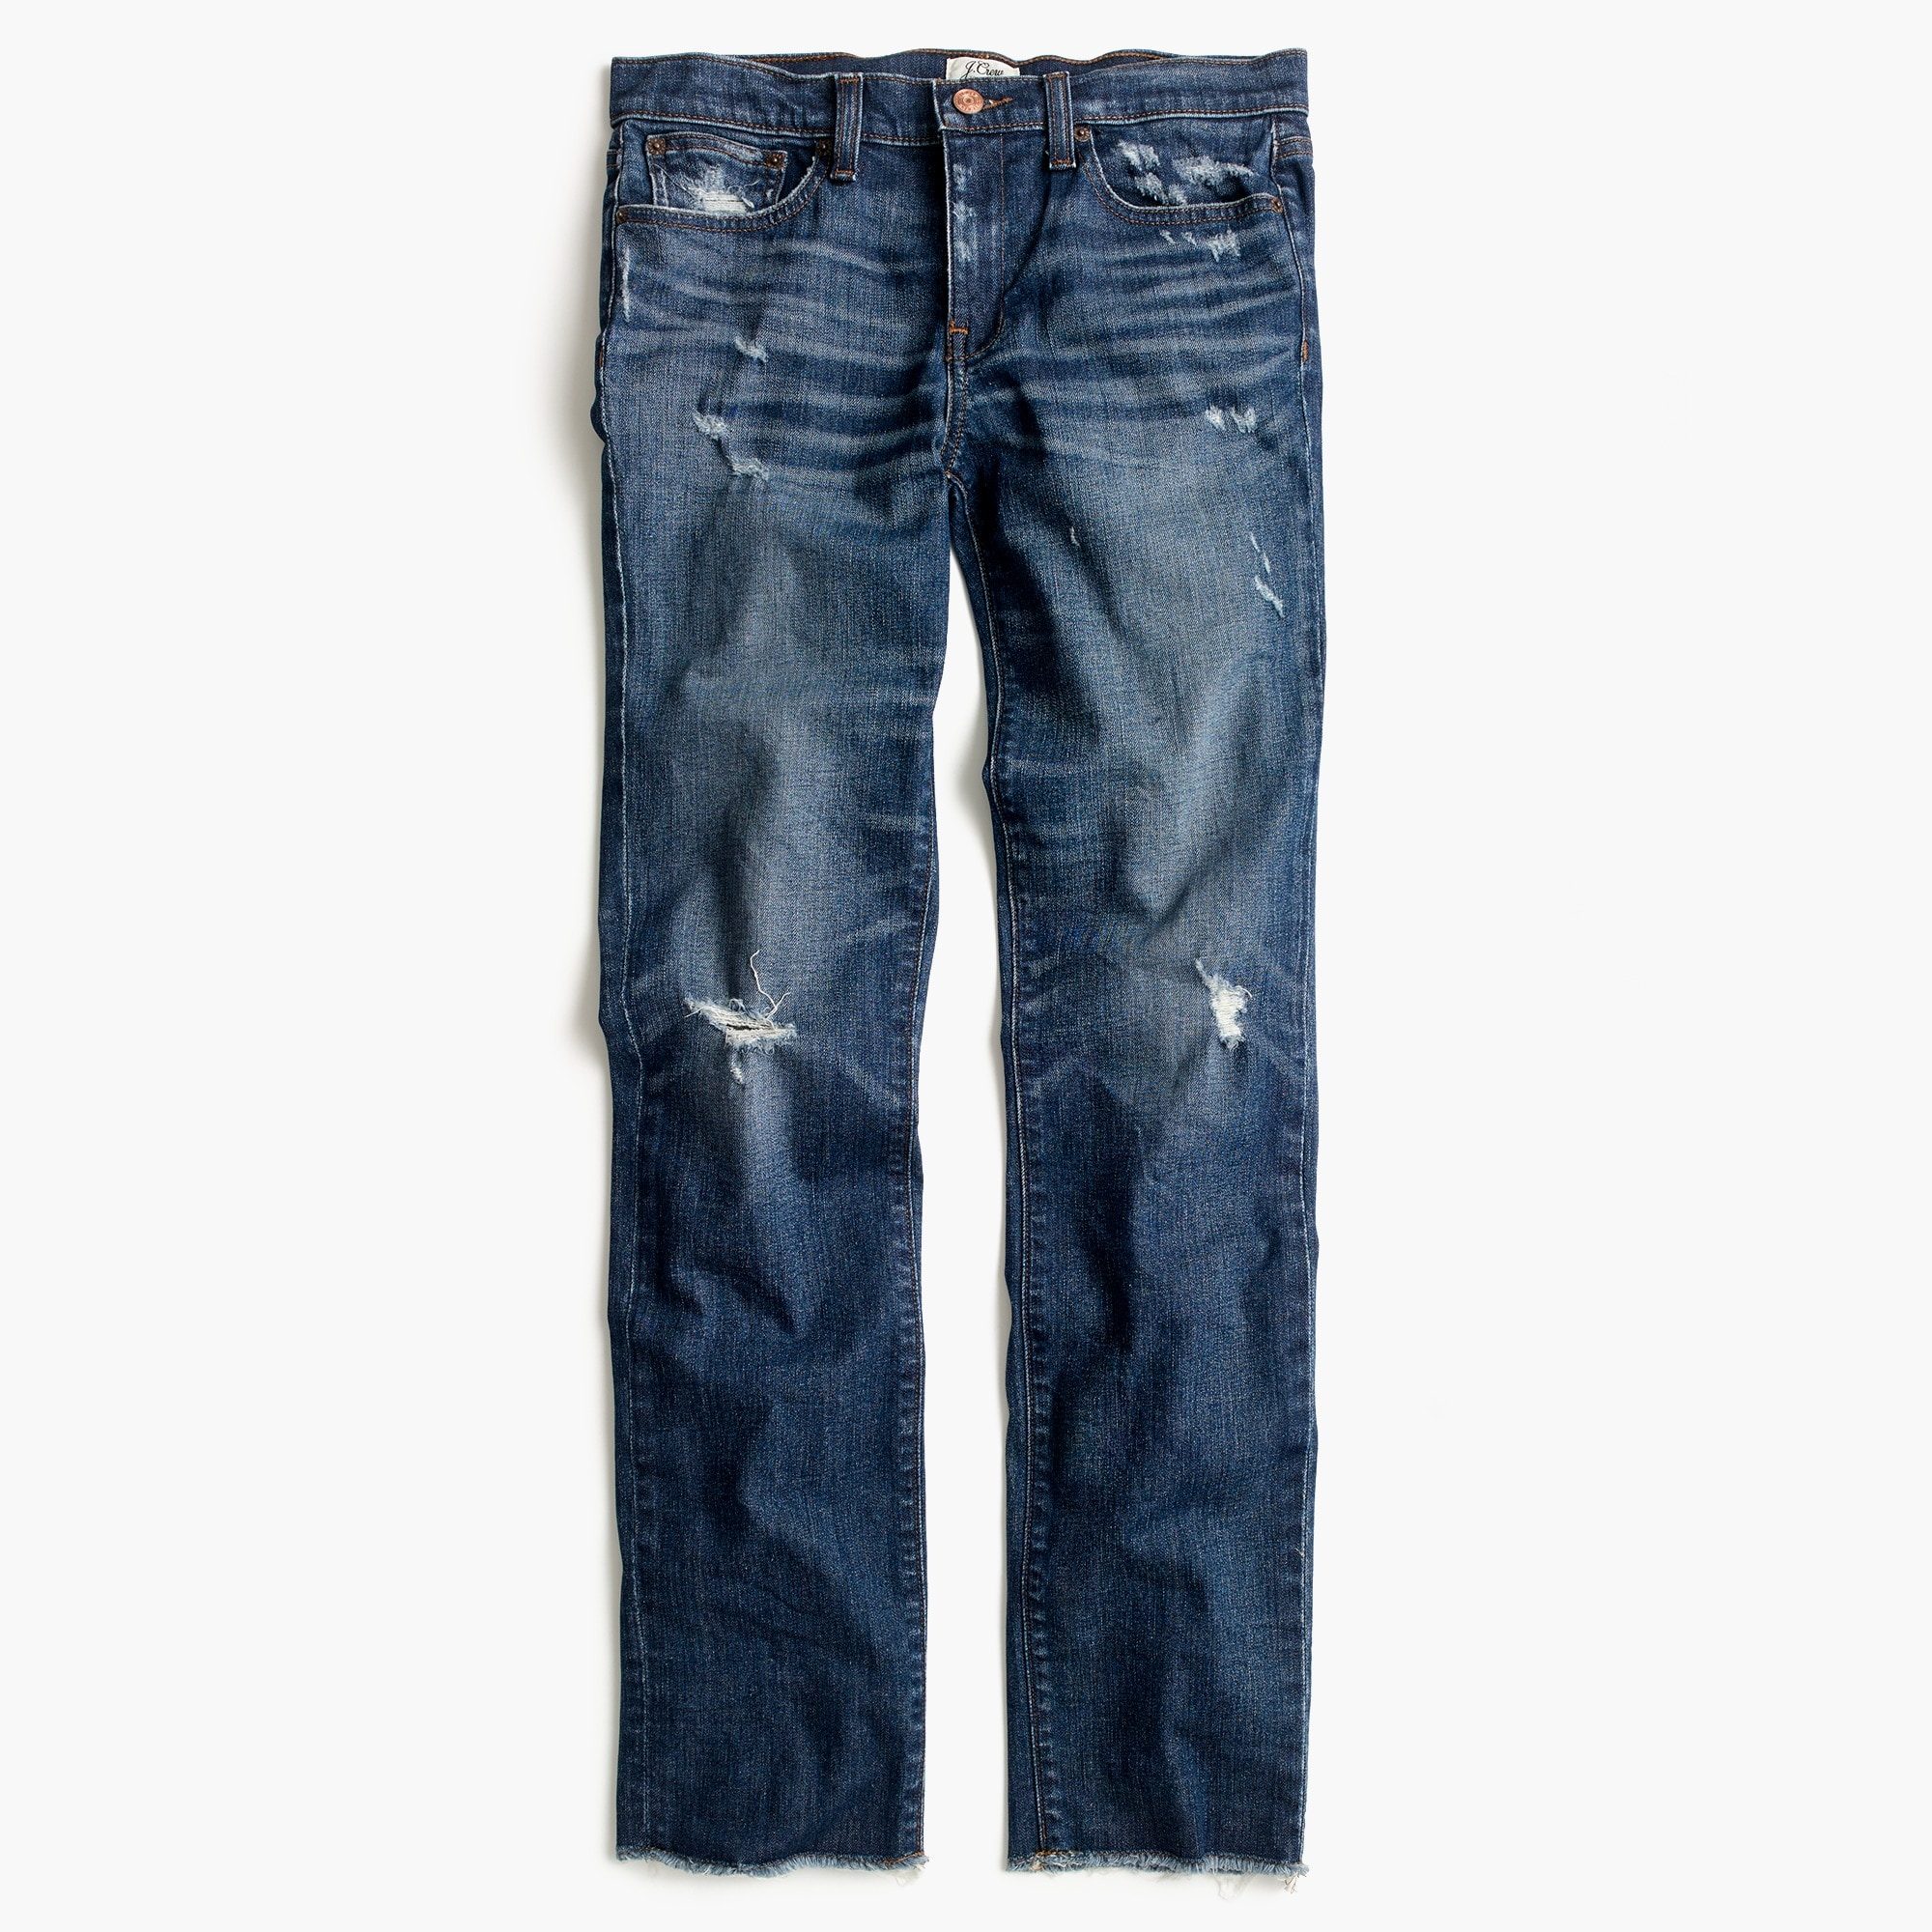 Slim boyfriend jean in Silverwood wash